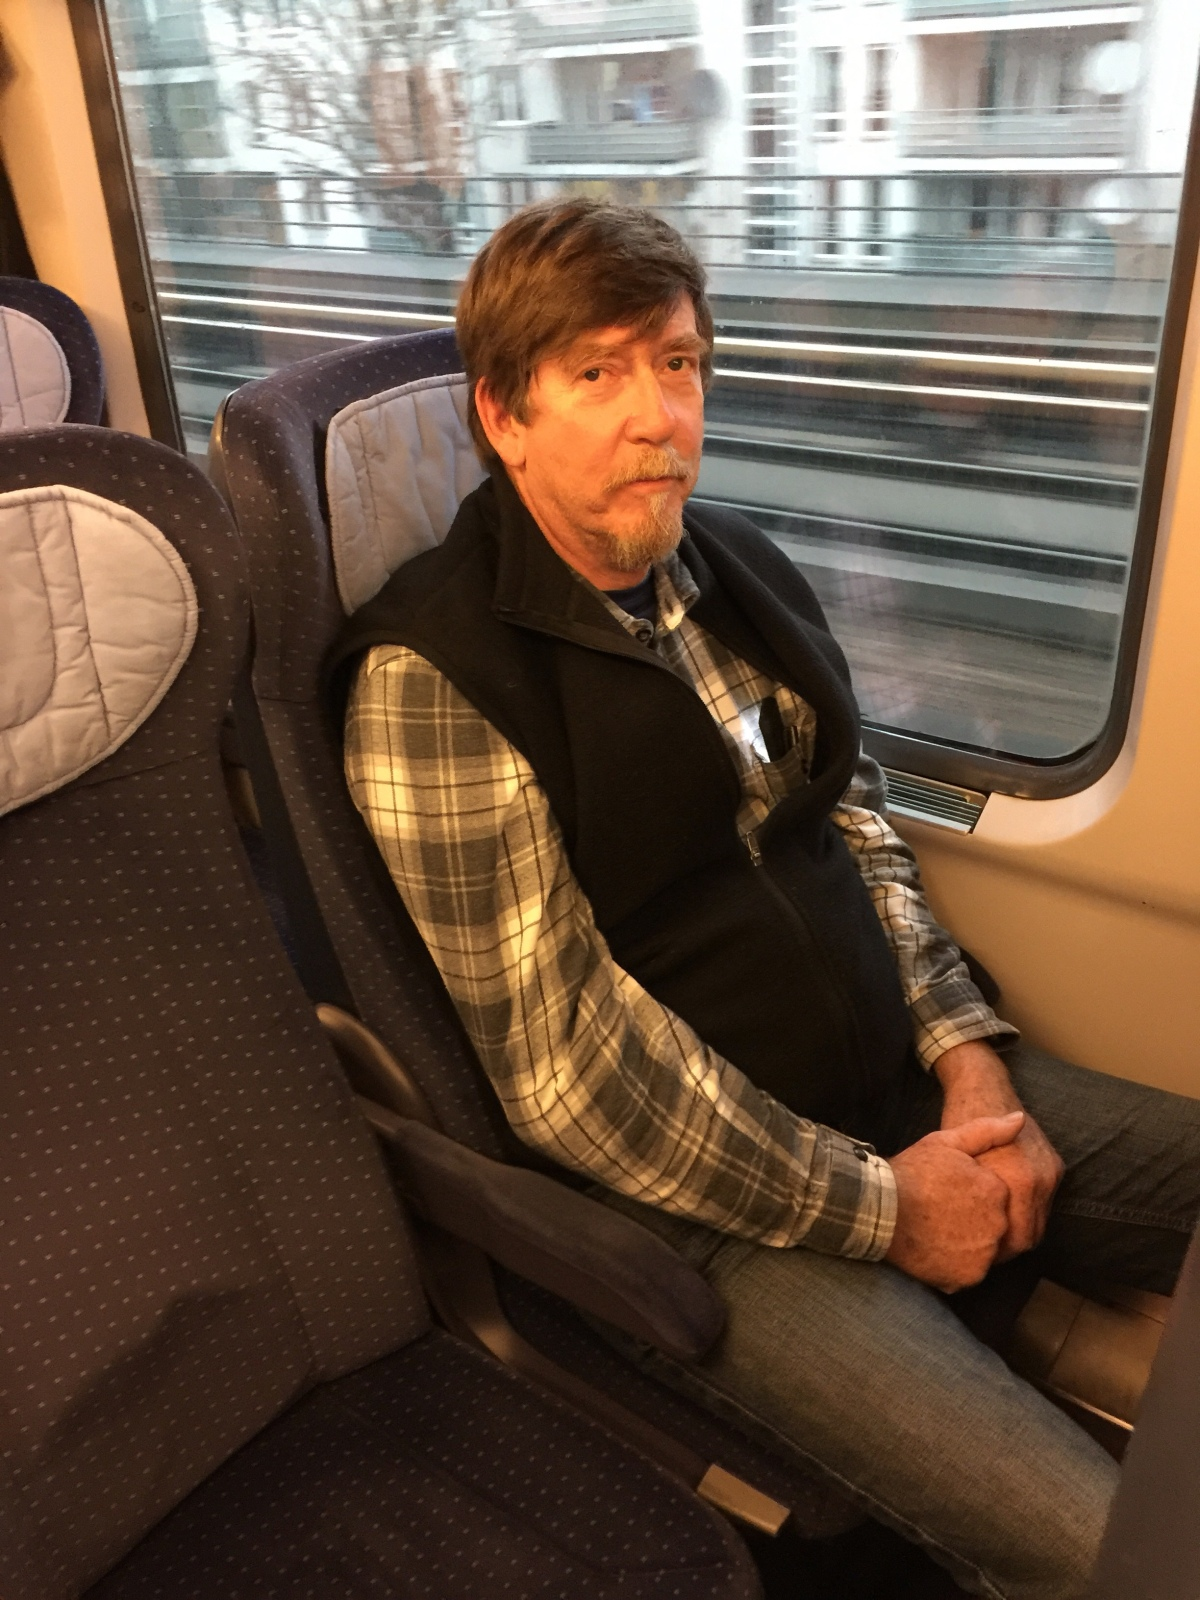 Amsterdam to Berlin